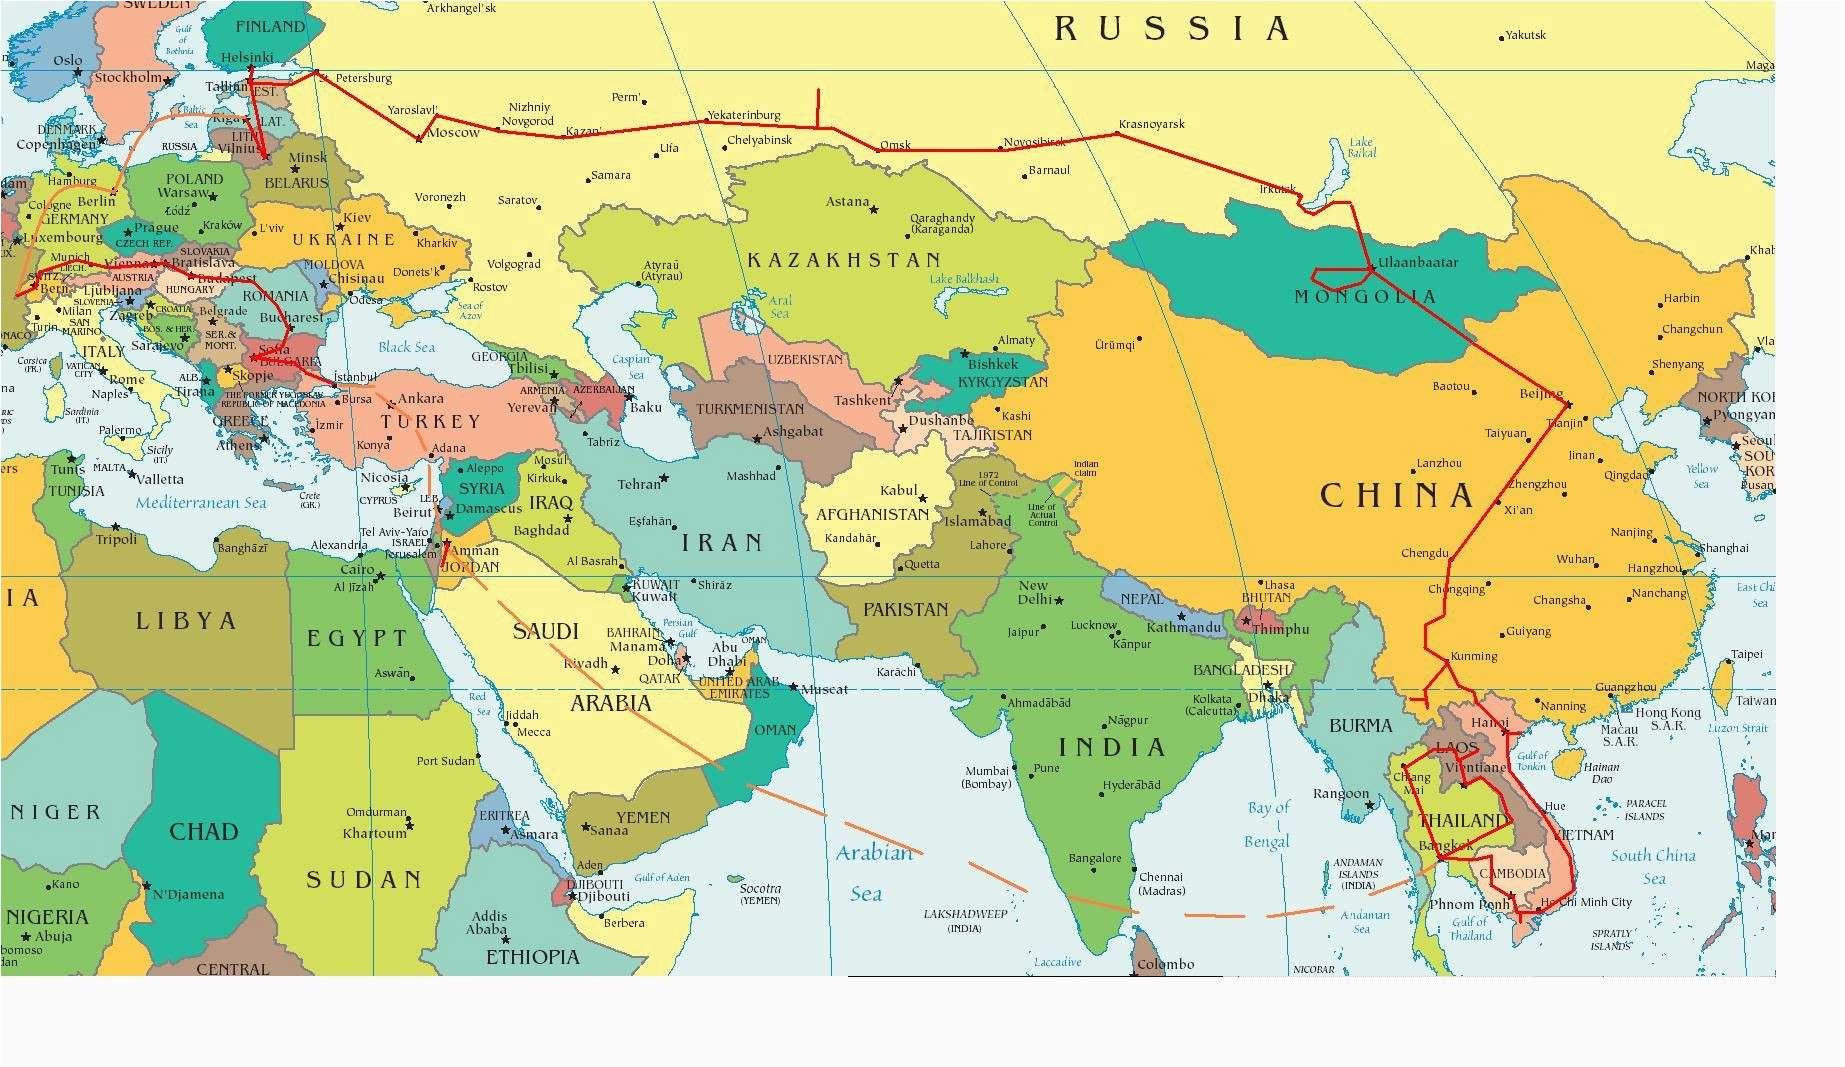 Map Of E Europe Eastern Europe and Middle East Partial Europe Middle East